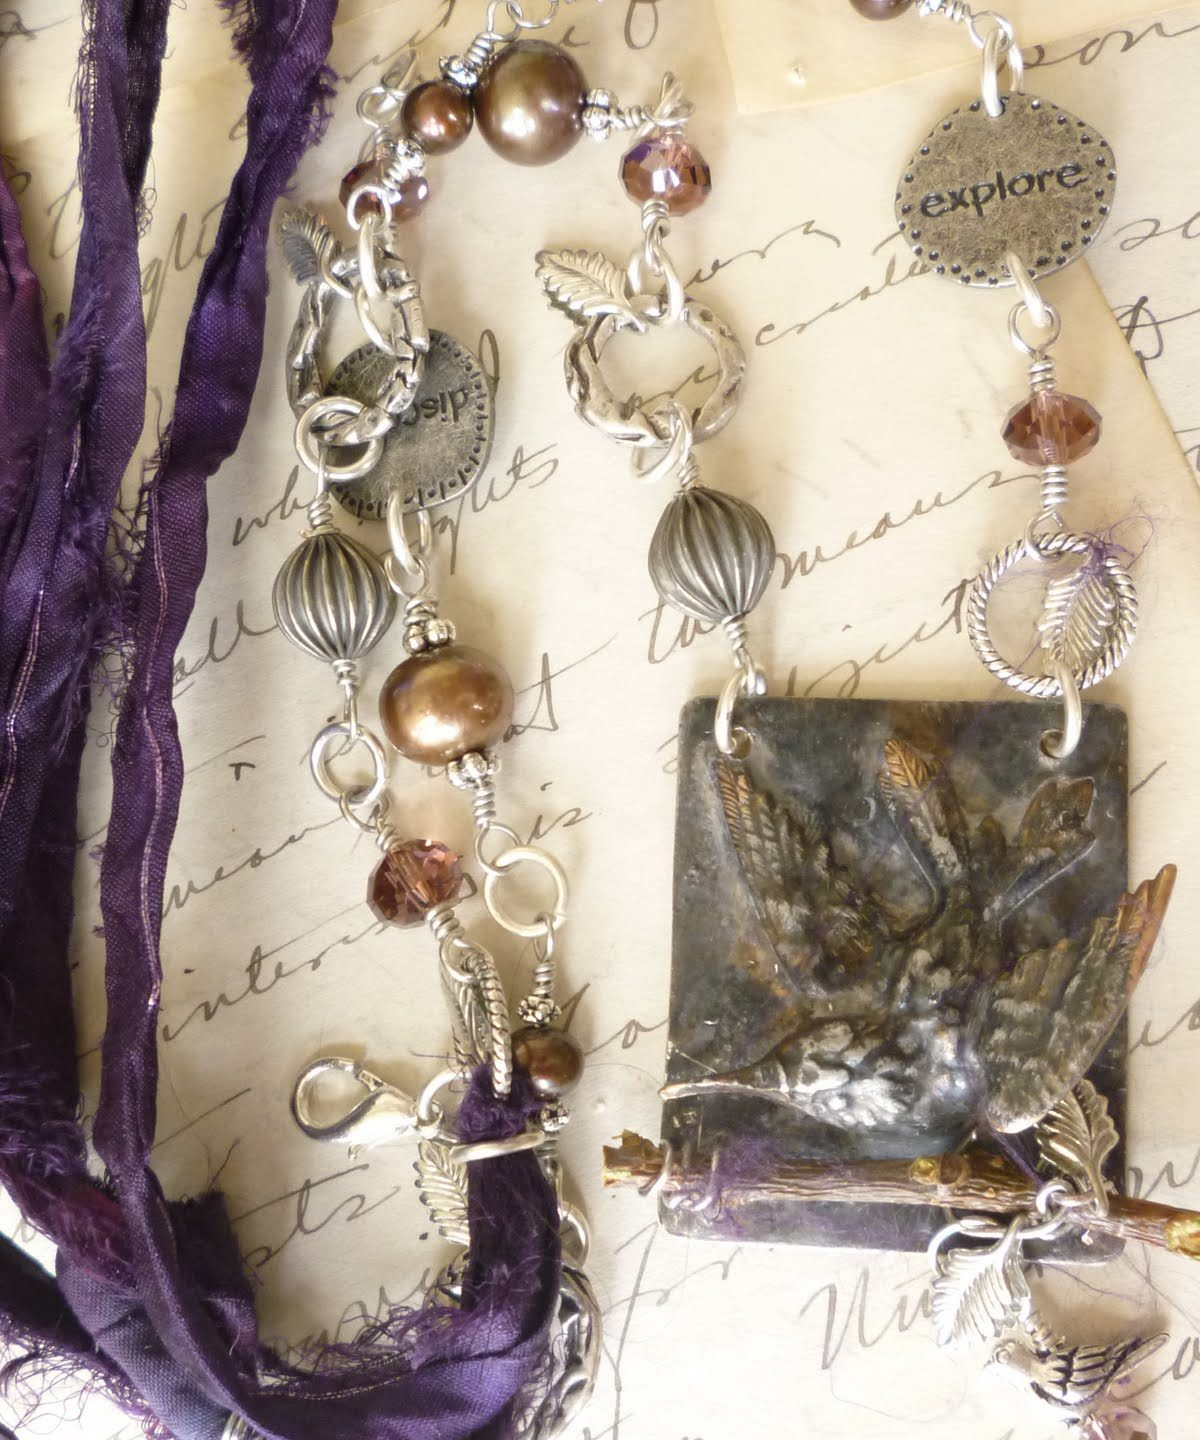 Mixed Media Jewelery: A journey to the wild side!